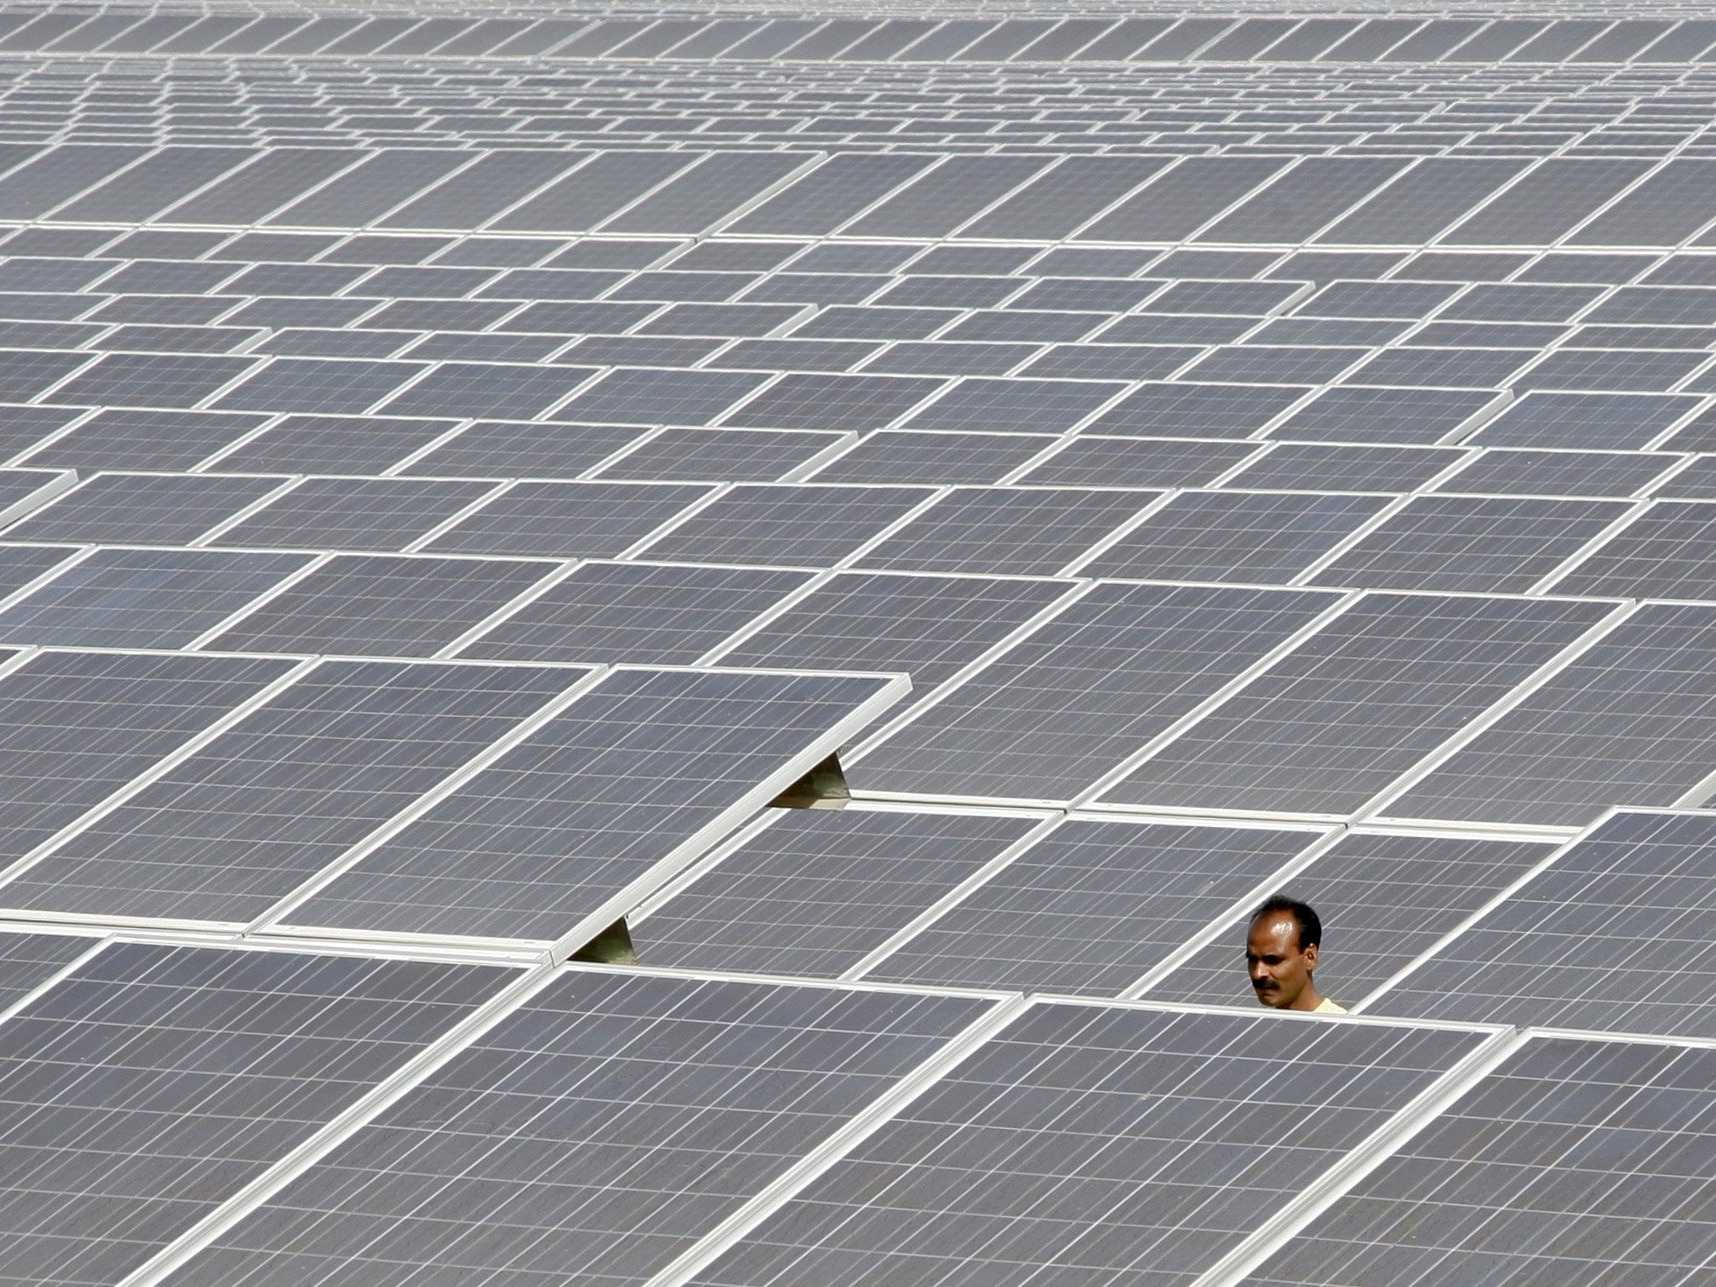 india-is-building-the-worlds-largest-solar-plant-for-44-billion